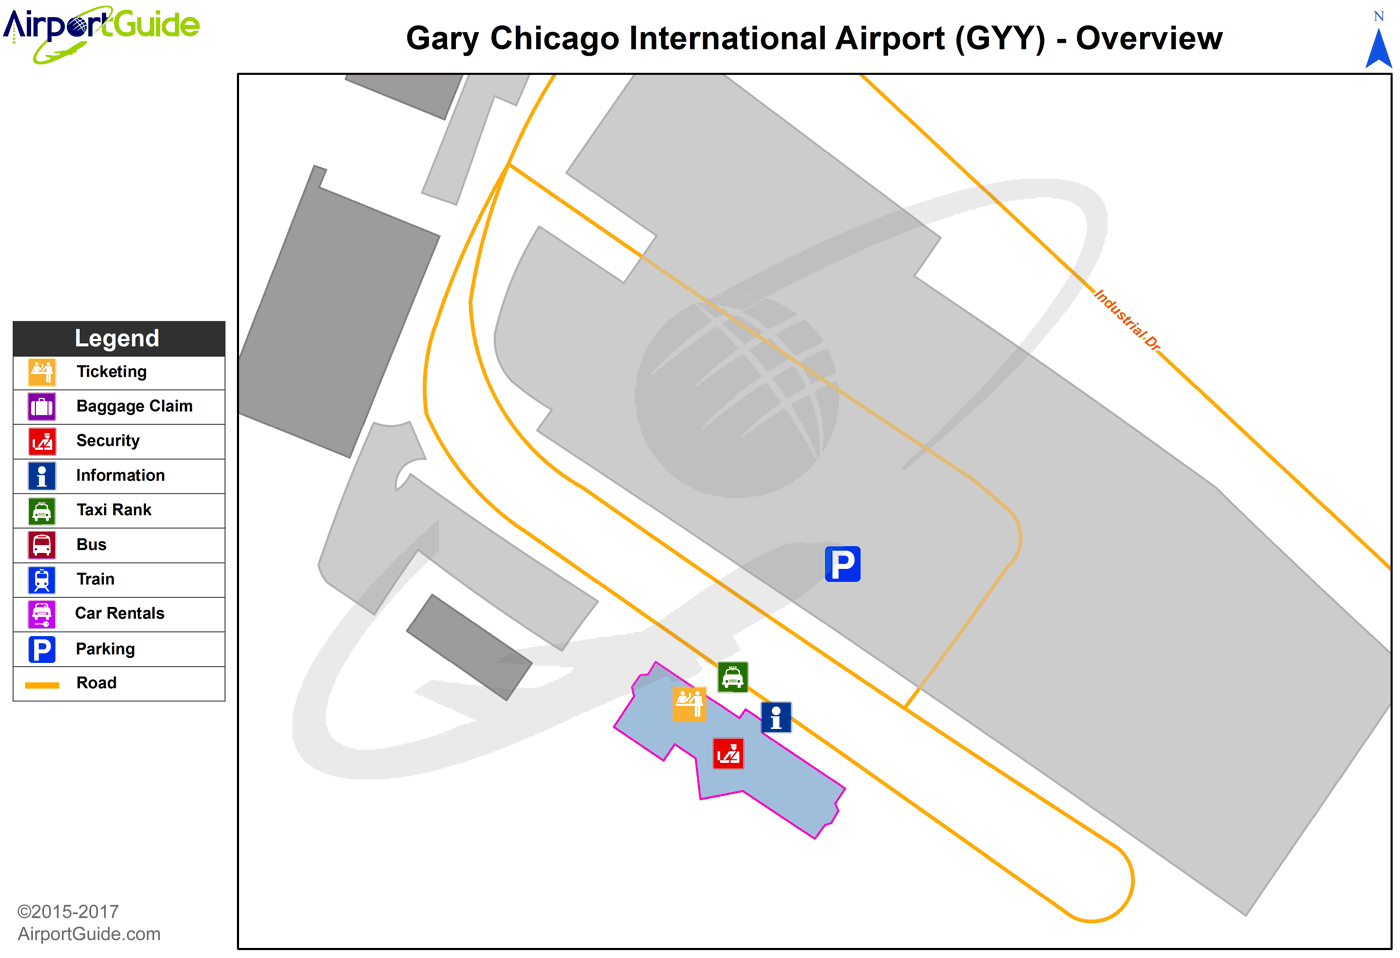 Gary - Jasper County (GYY) Airport Terminal Map - Overview